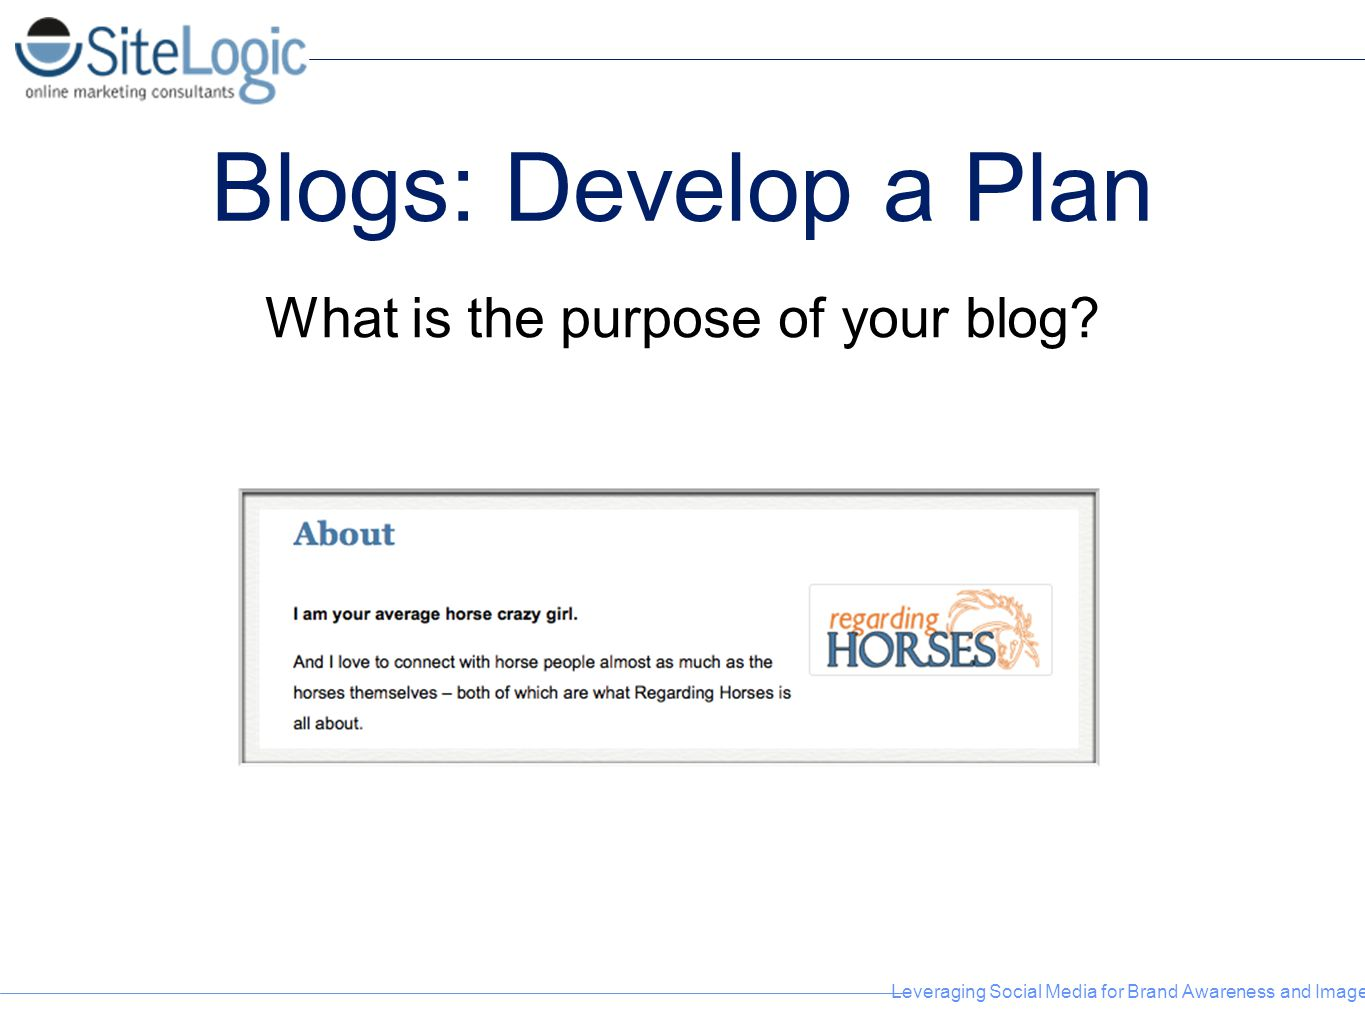 Leveraging Social Media for Brand Awareness and Image Blogs: Develop a Plan What is the purpose of your blog?